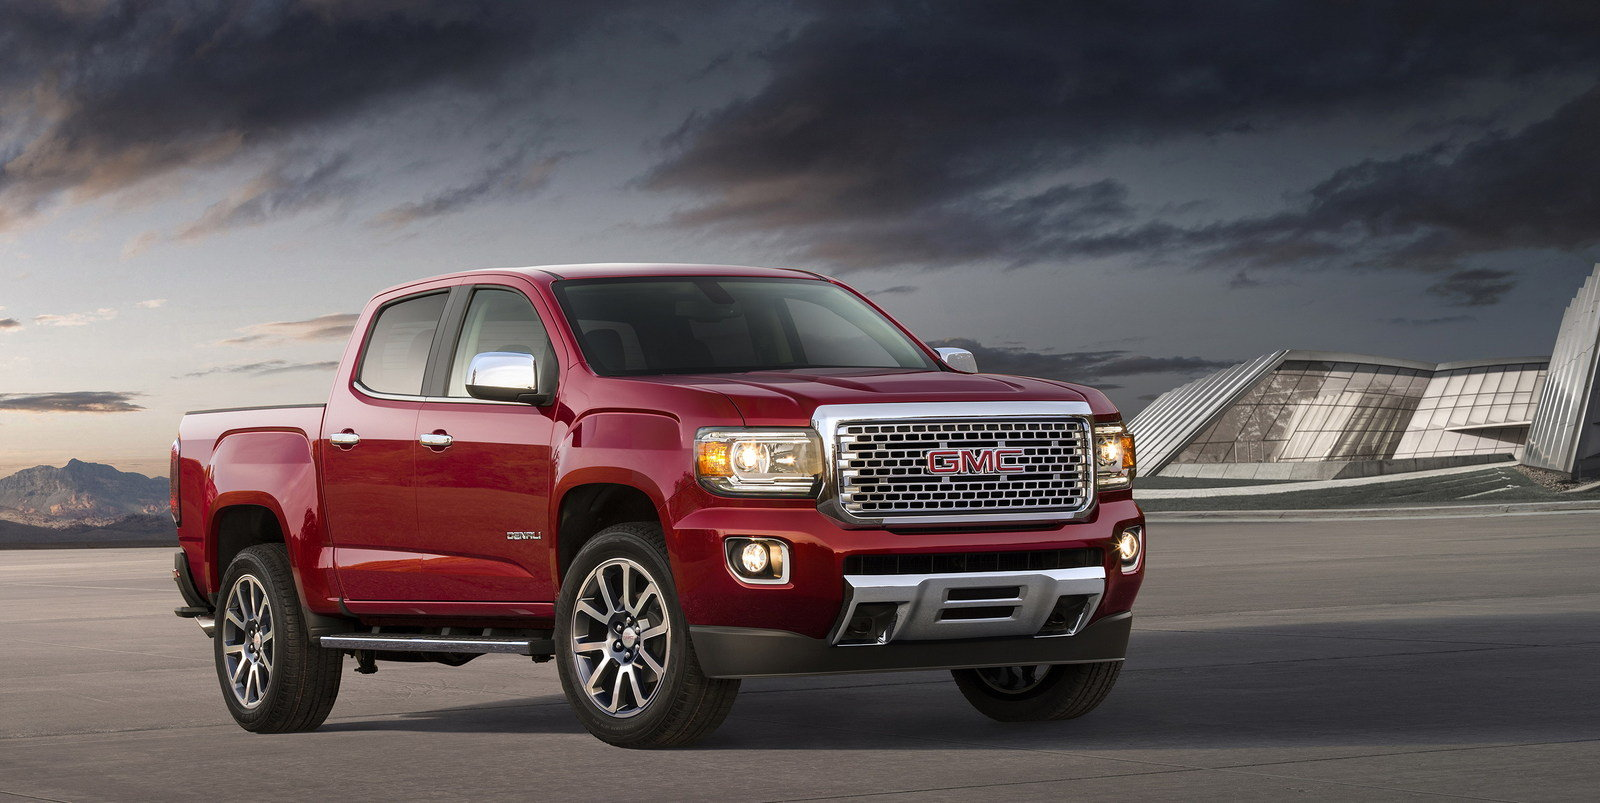 2017 gmc canyon denali picture 655835 truck review top speed. Black Bedroom Furniture Sets. Home Design Ideas